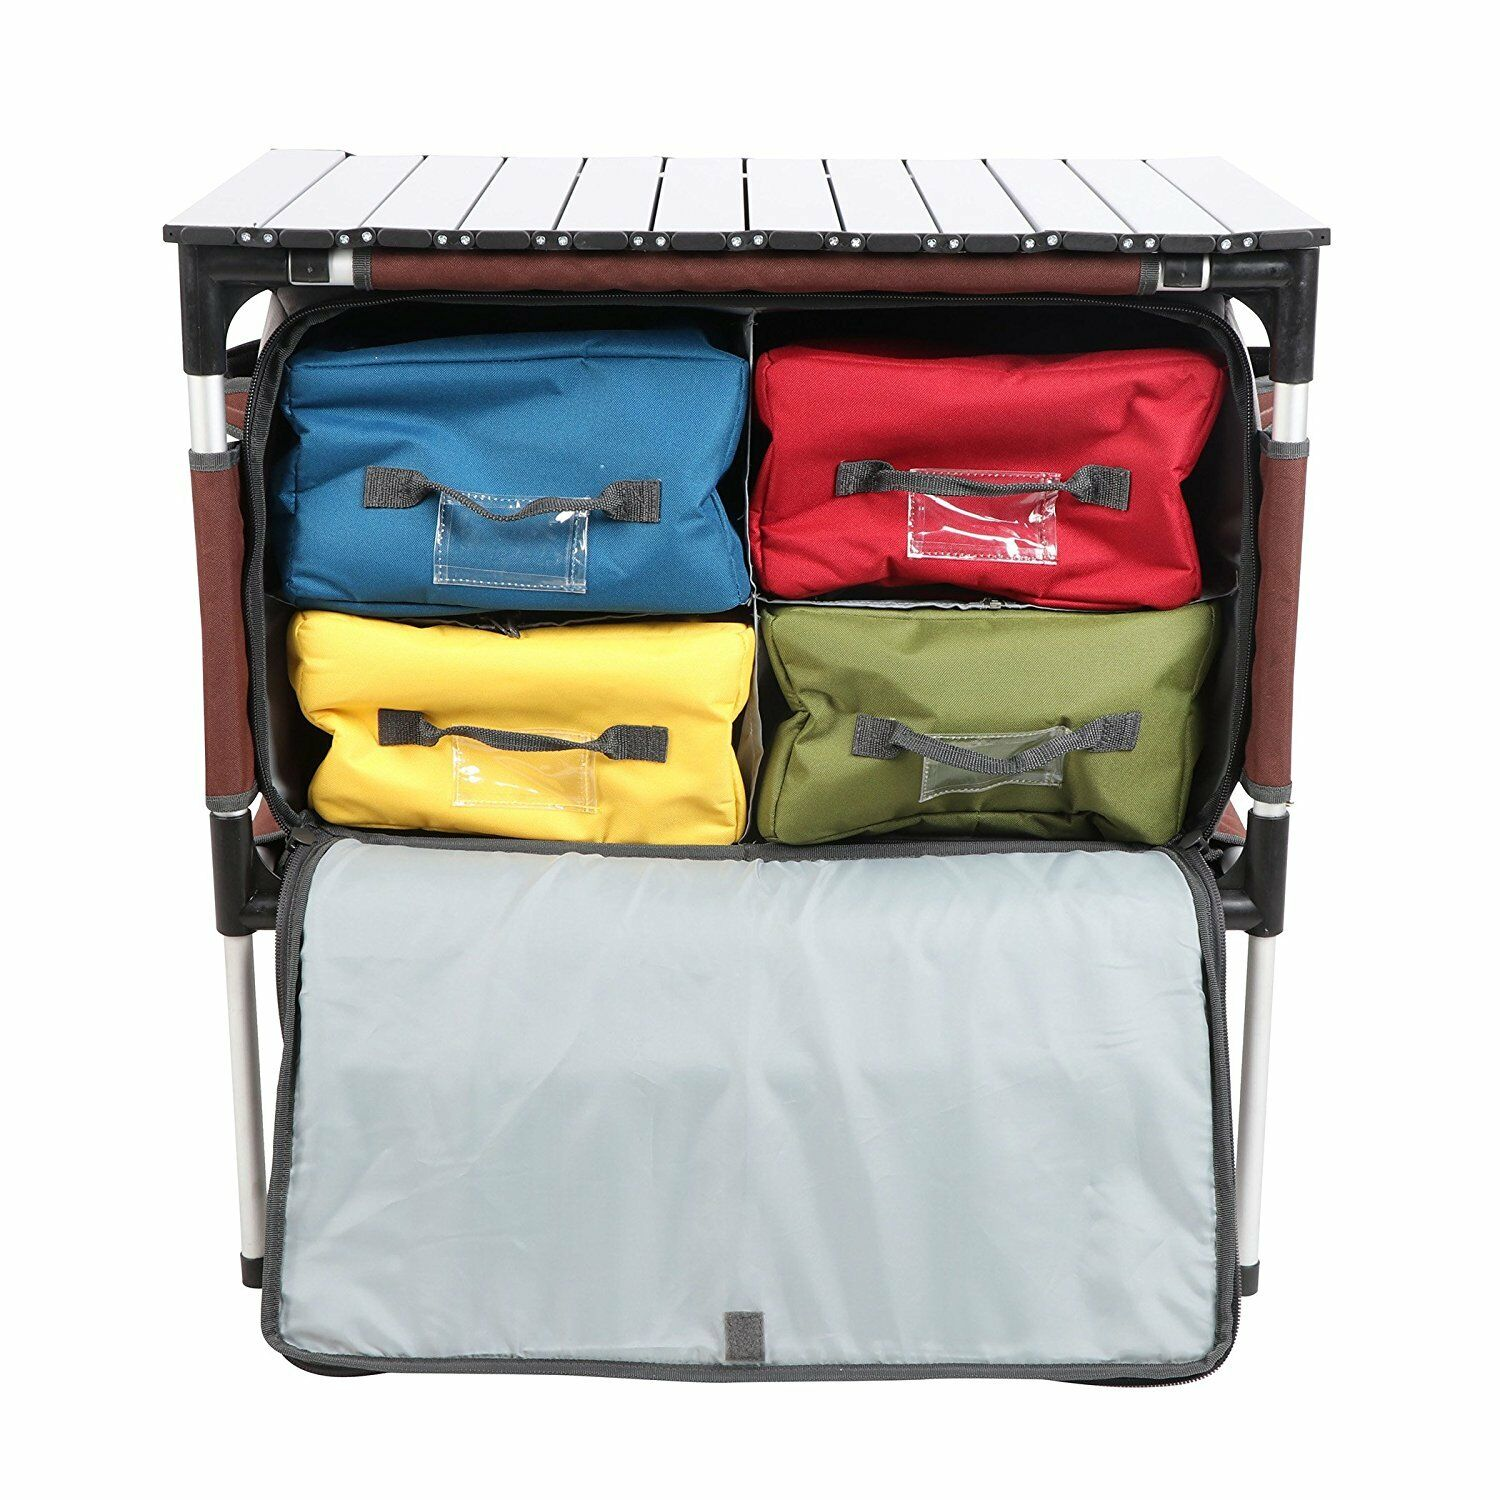 Portable Camping Chef Cook Bin Table Lightweight ALU With 4  Cooler Bag Outdoor  sale with high discount